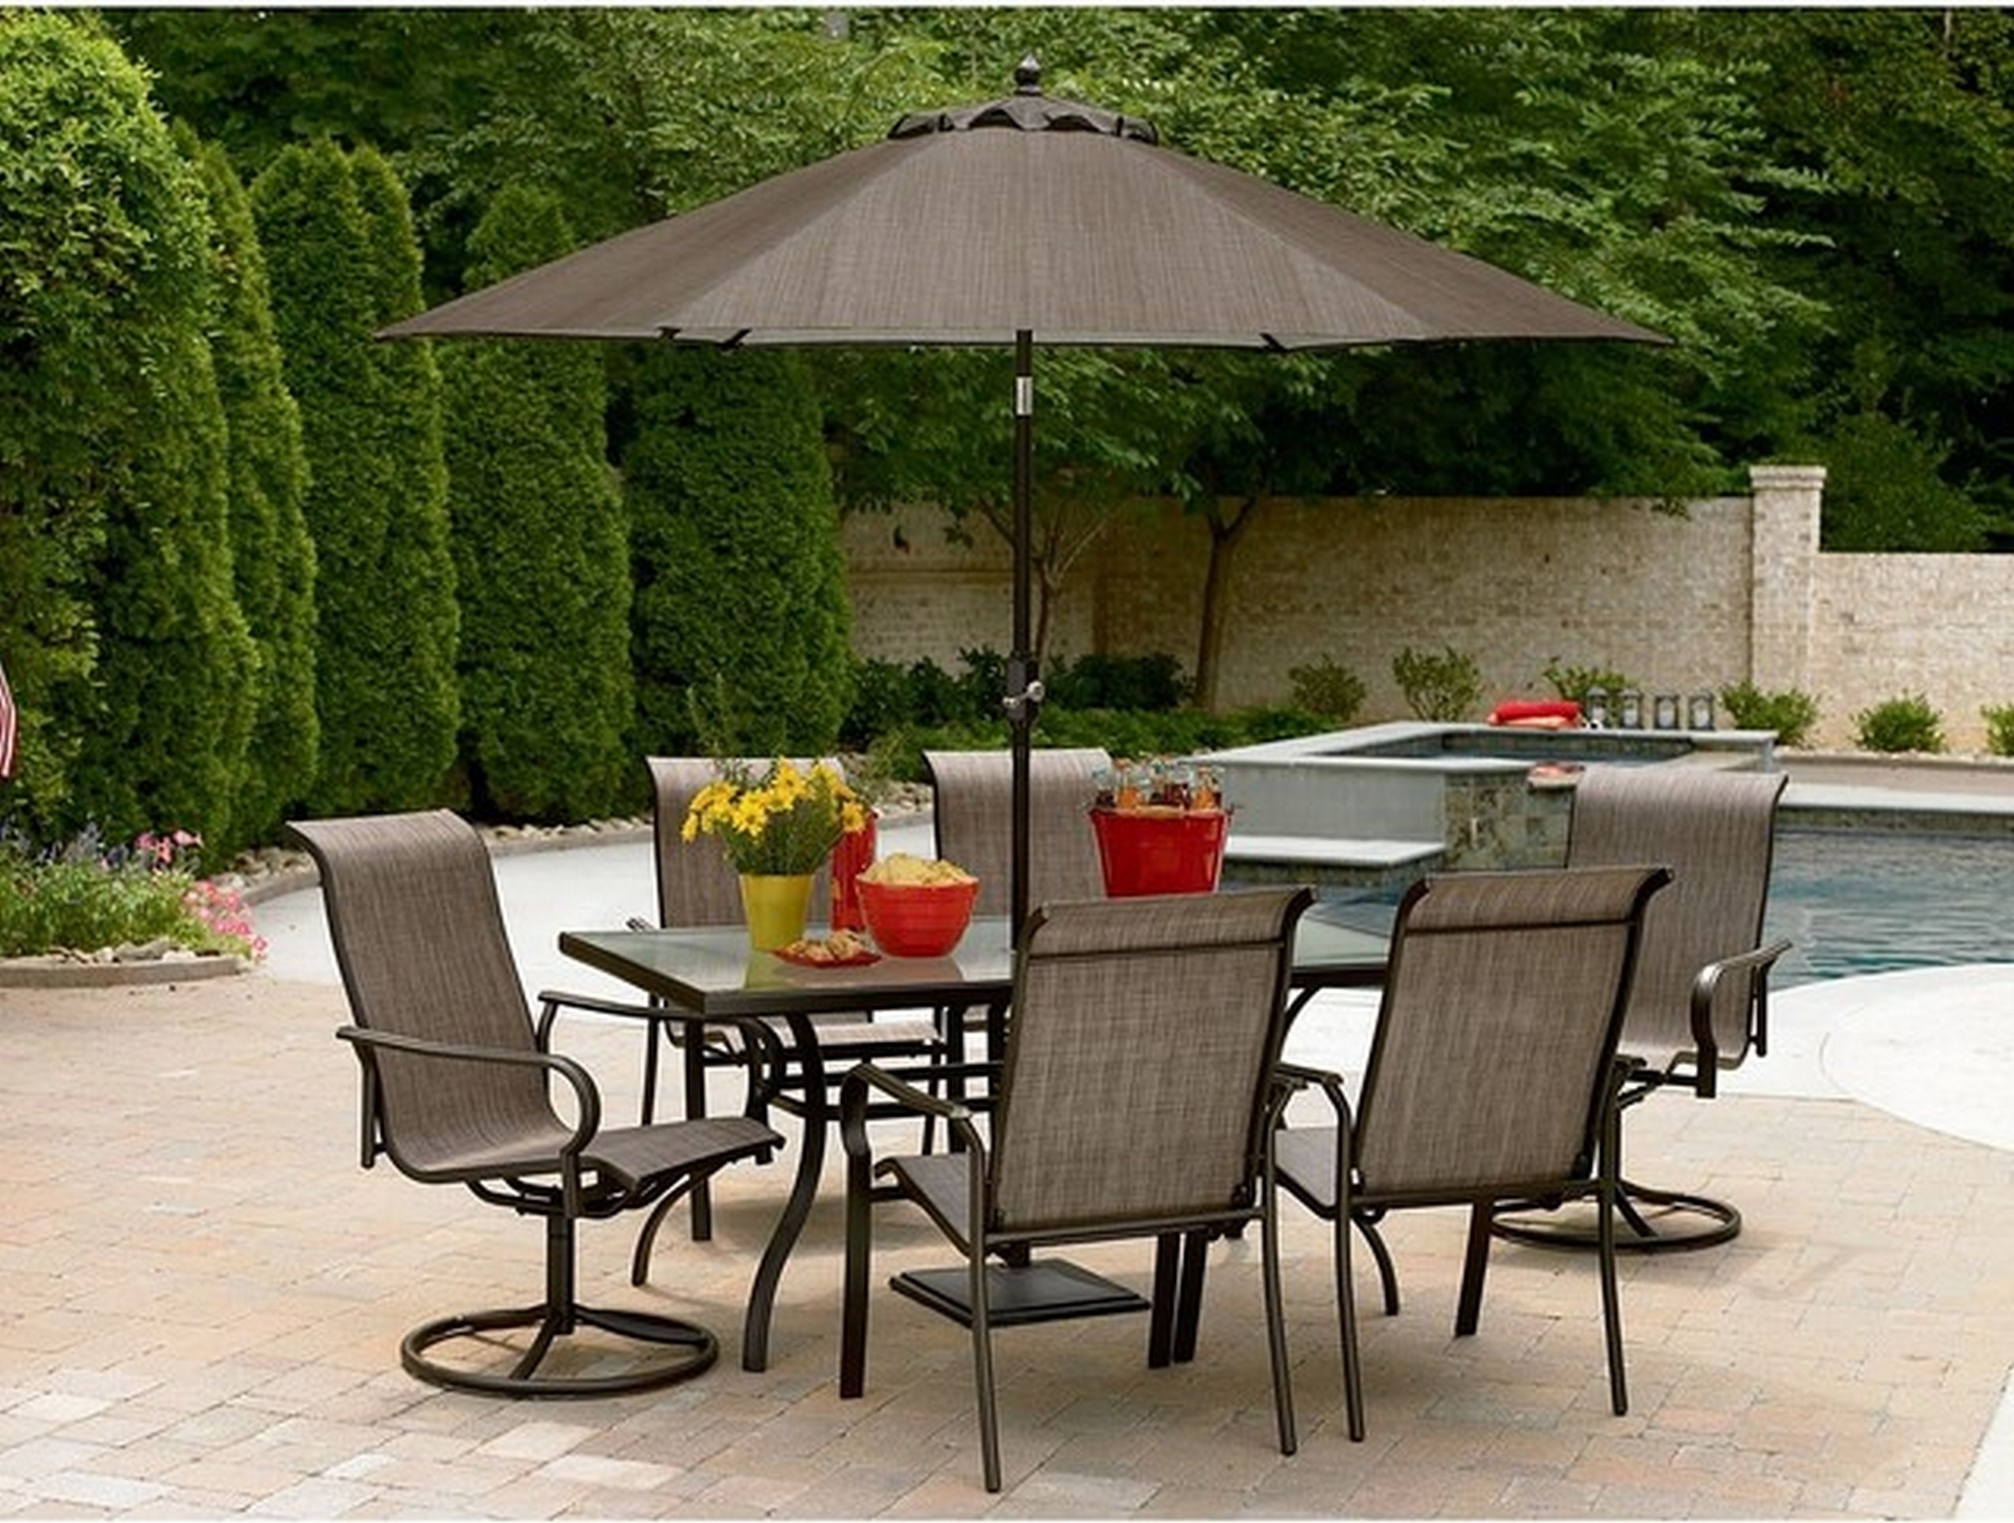 Popular Patios: Outstanding Patio Umbrella Walmart For Stunning Patio Within Free Standing Umbrellas For Patio (Gallery 19 of 20)